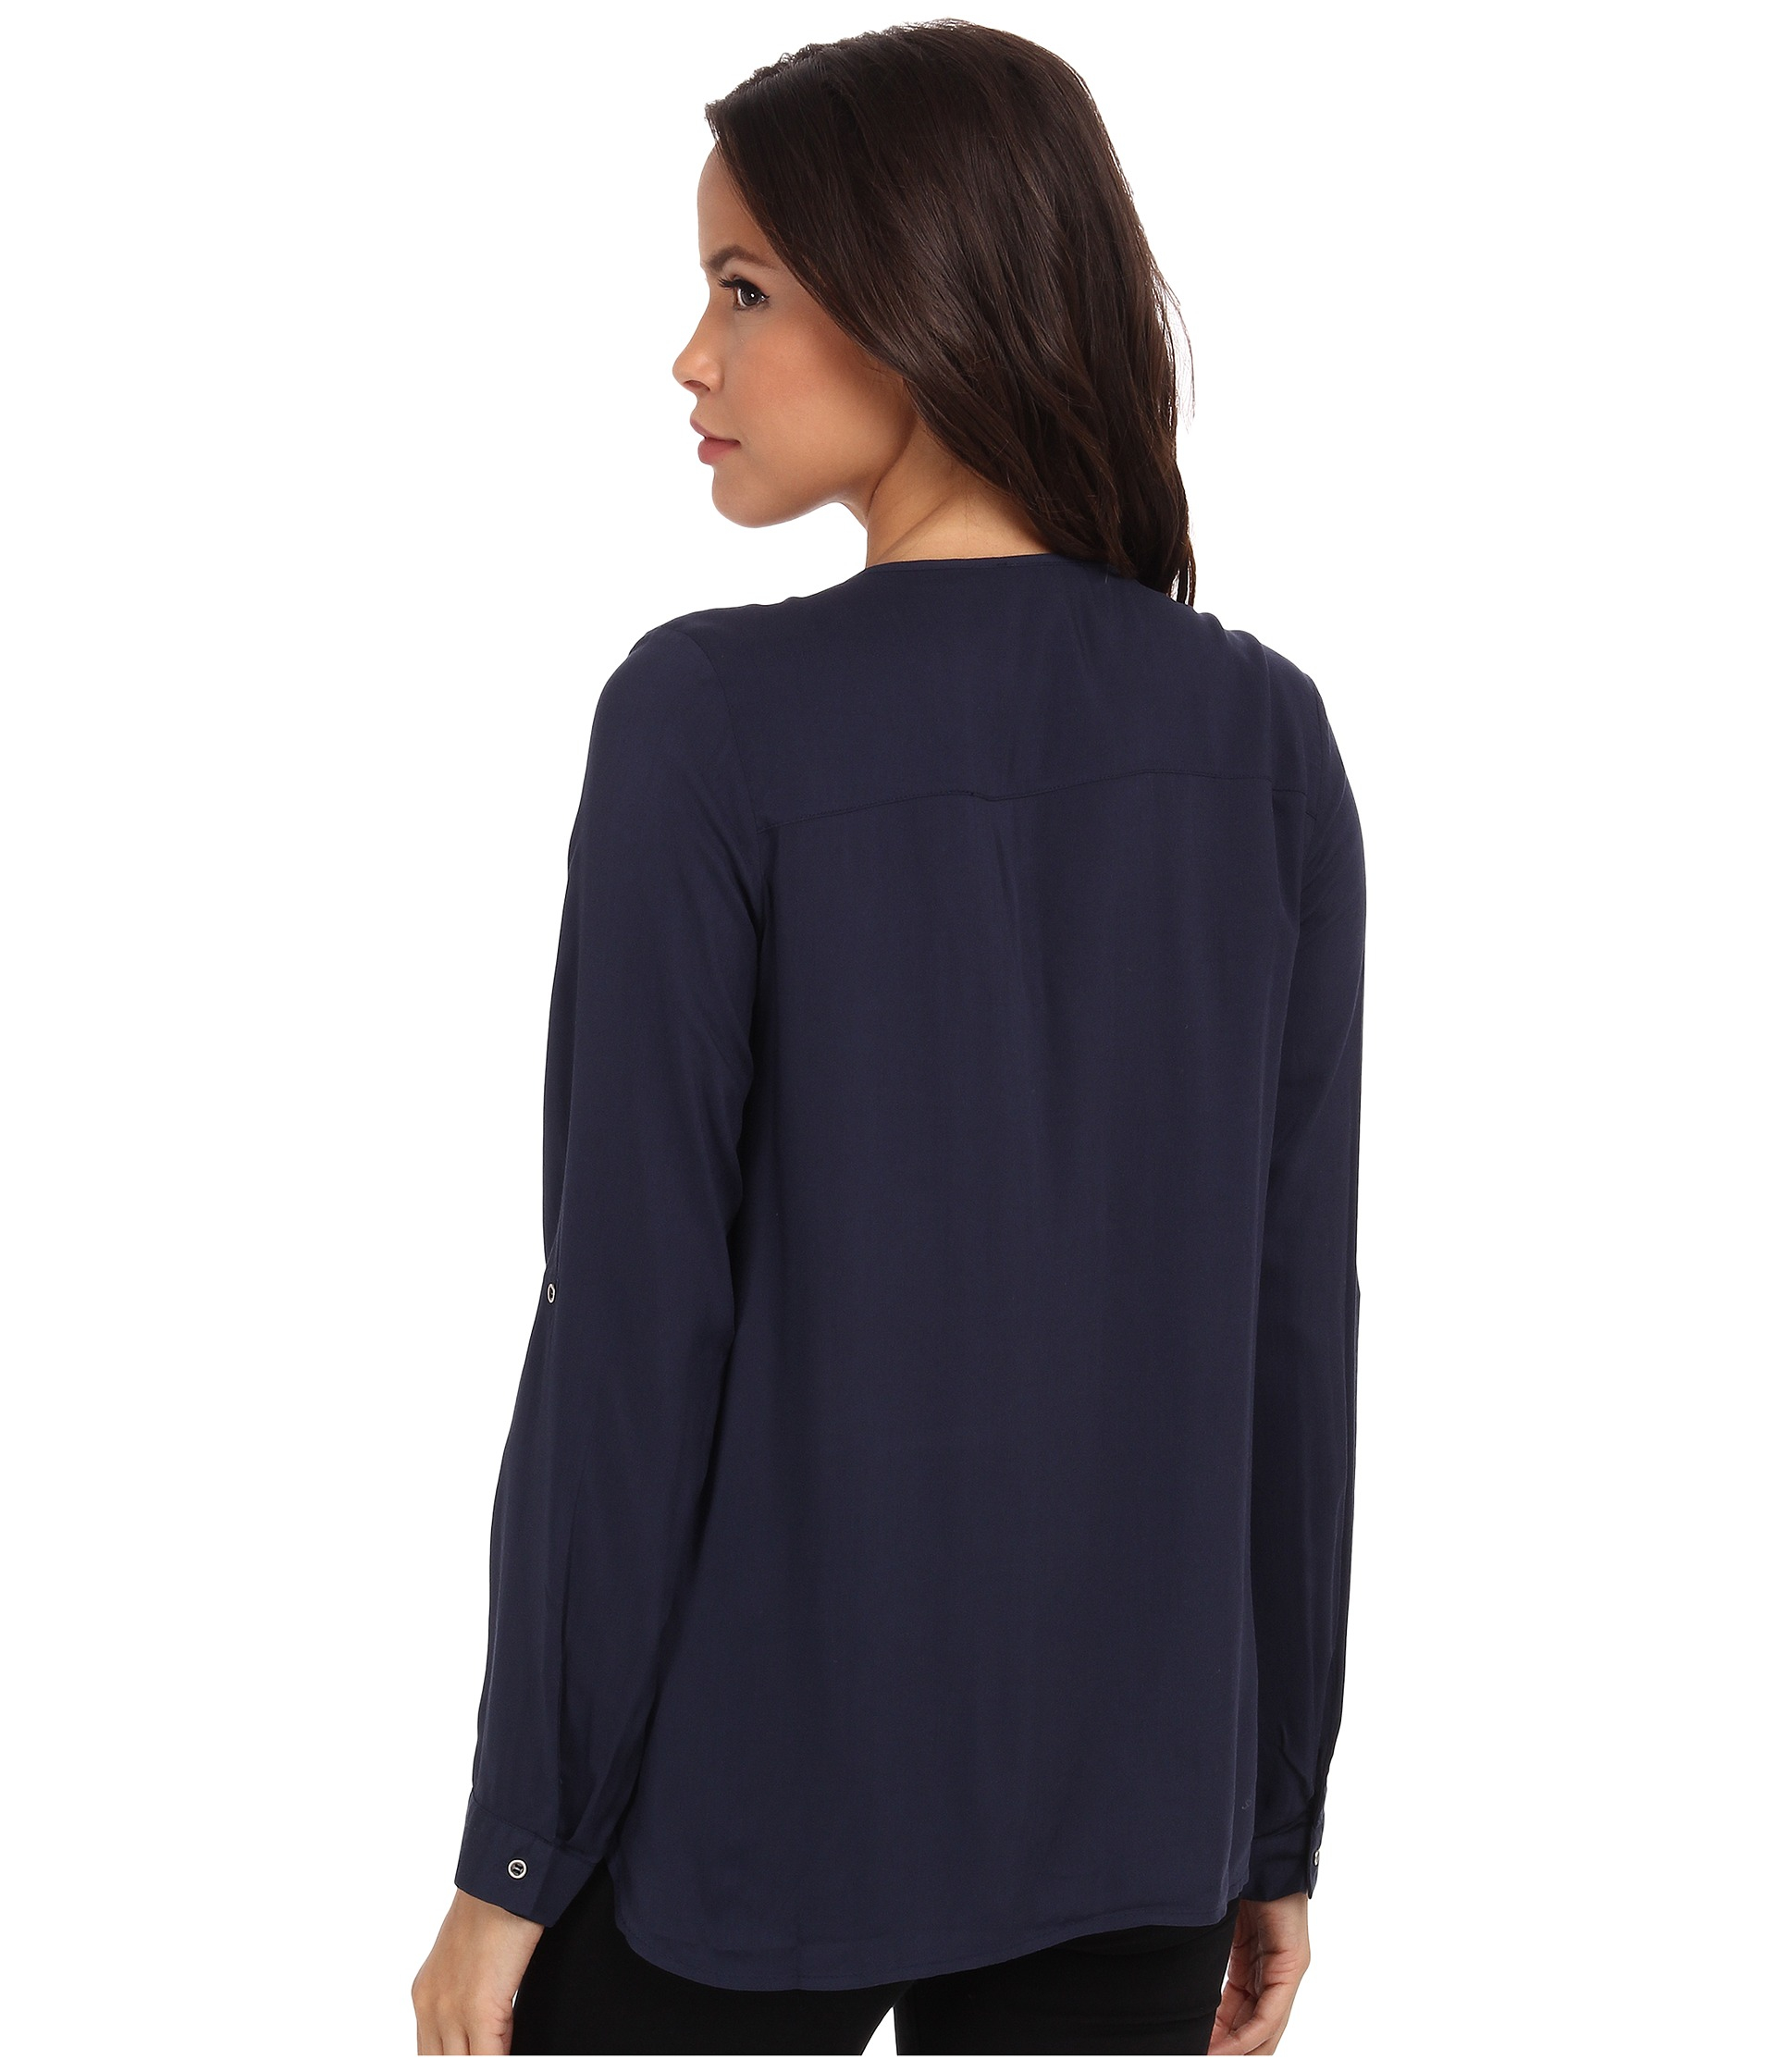 A silhouette like that of the Lulus Picture This Navy Blue Long Sleeve Lace Top is destined to be a timeless one! A rounded neckline leads into a floral lace decolletage and shoulders, above long sleeves /5(65).